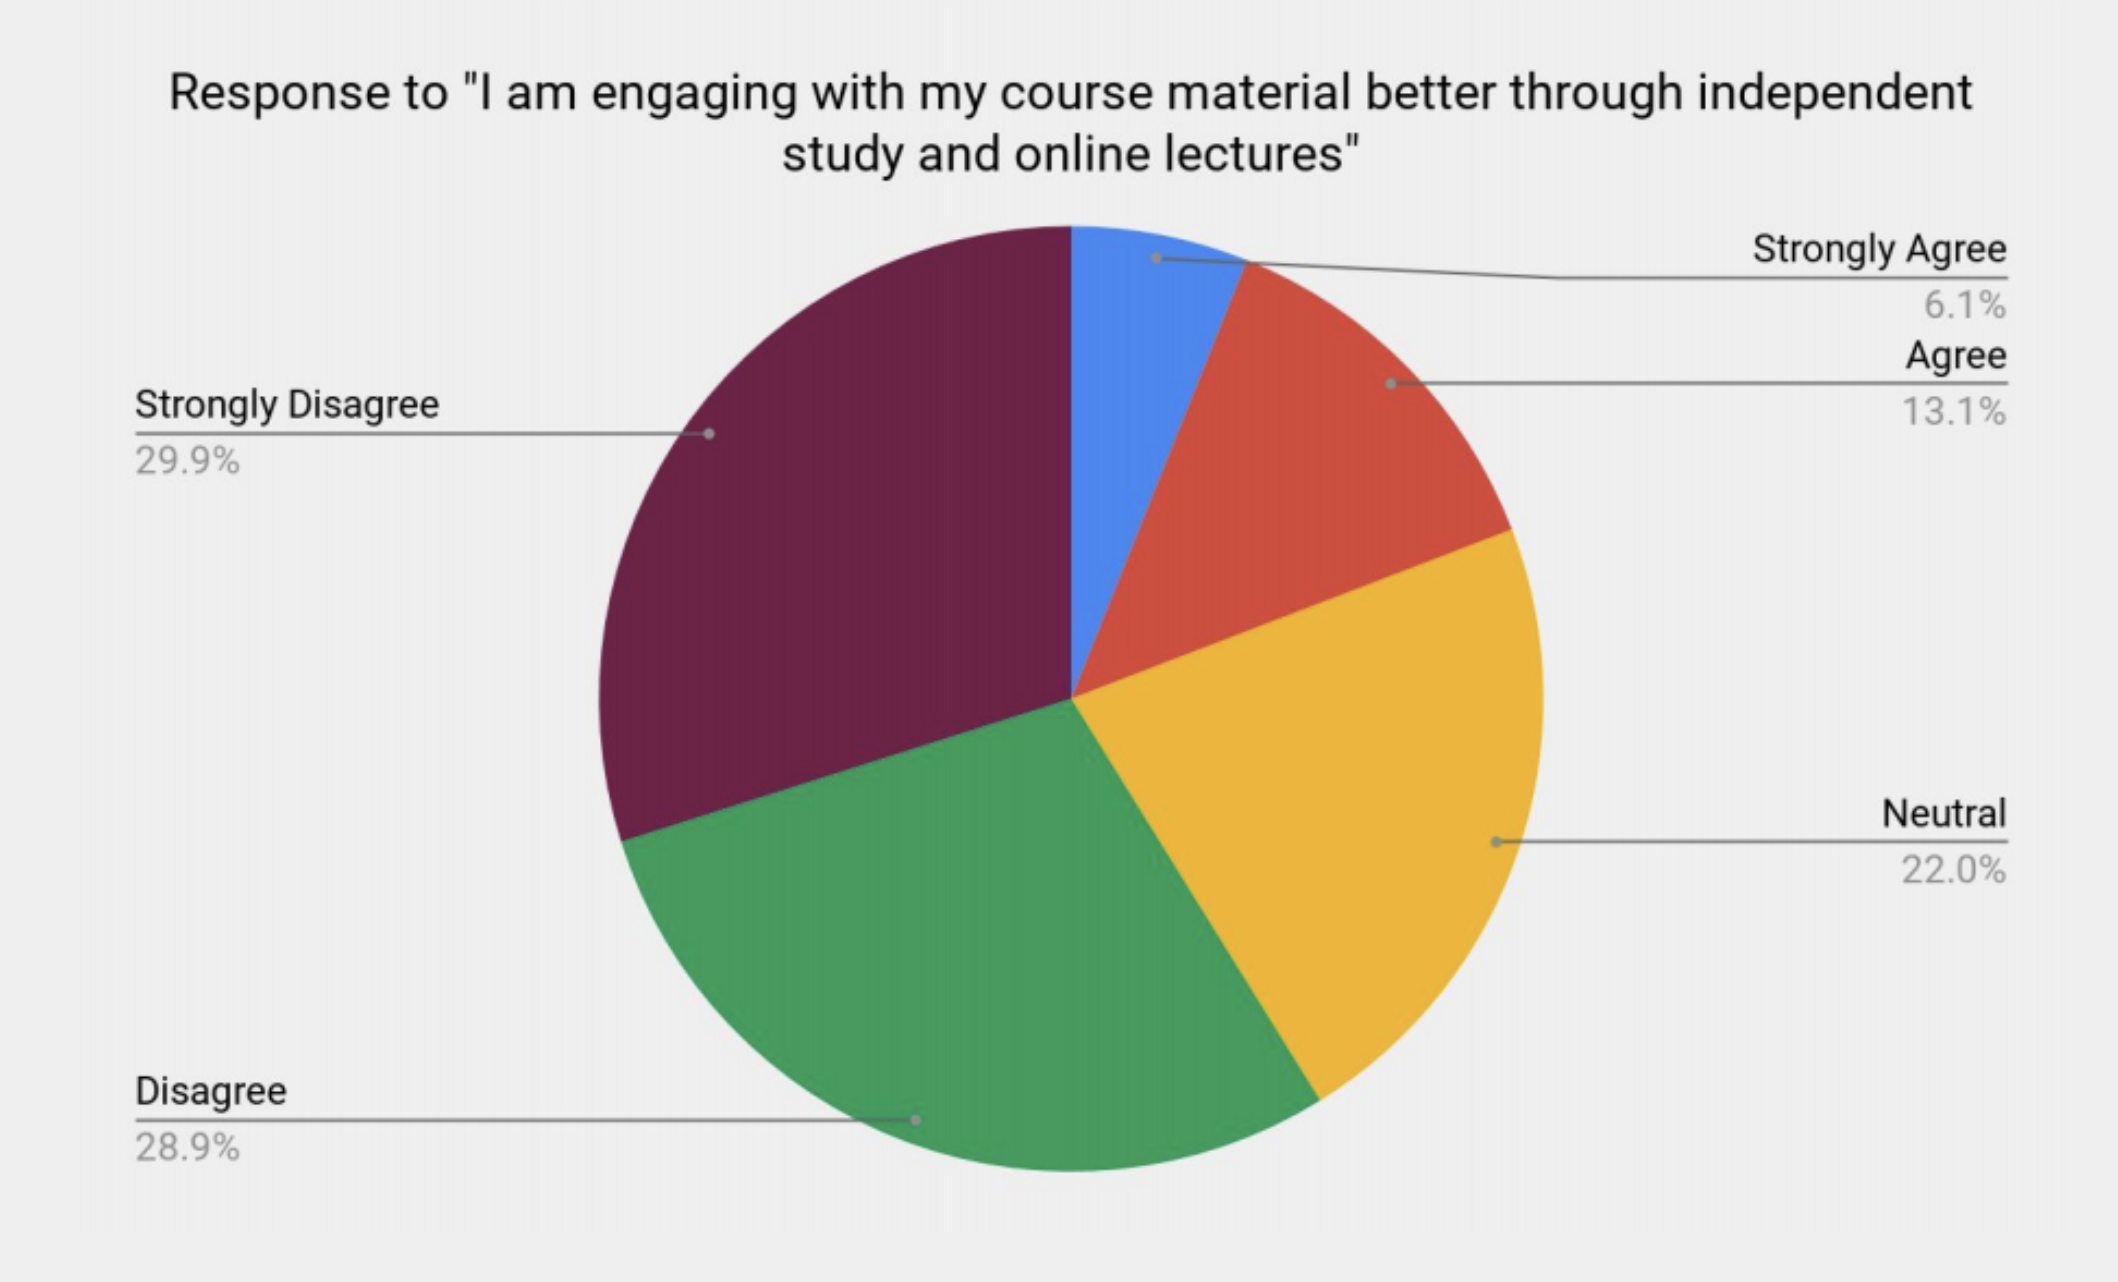 More than half of students disagreed that they could engage optimally with their courses through independent study and online lectures.